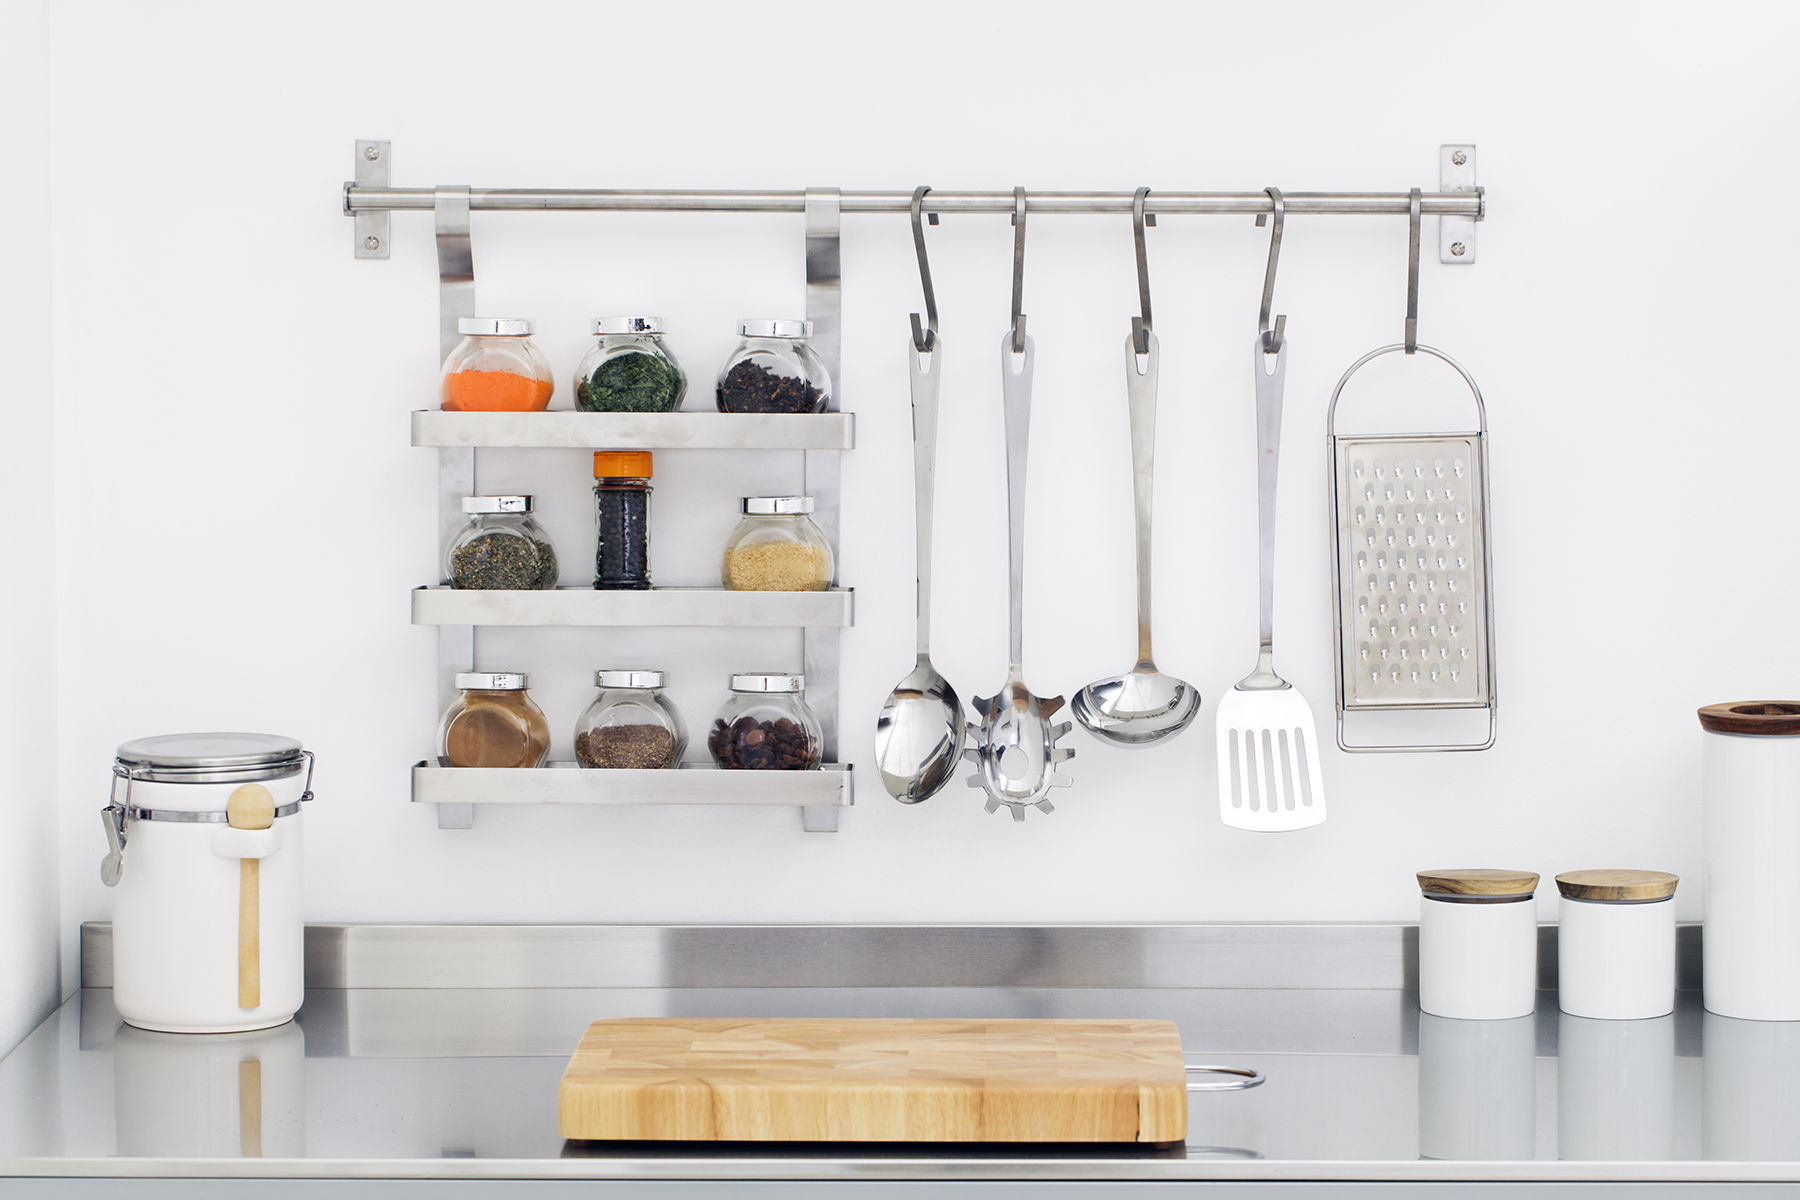 Kitchen counter with canisters and hanging spoons